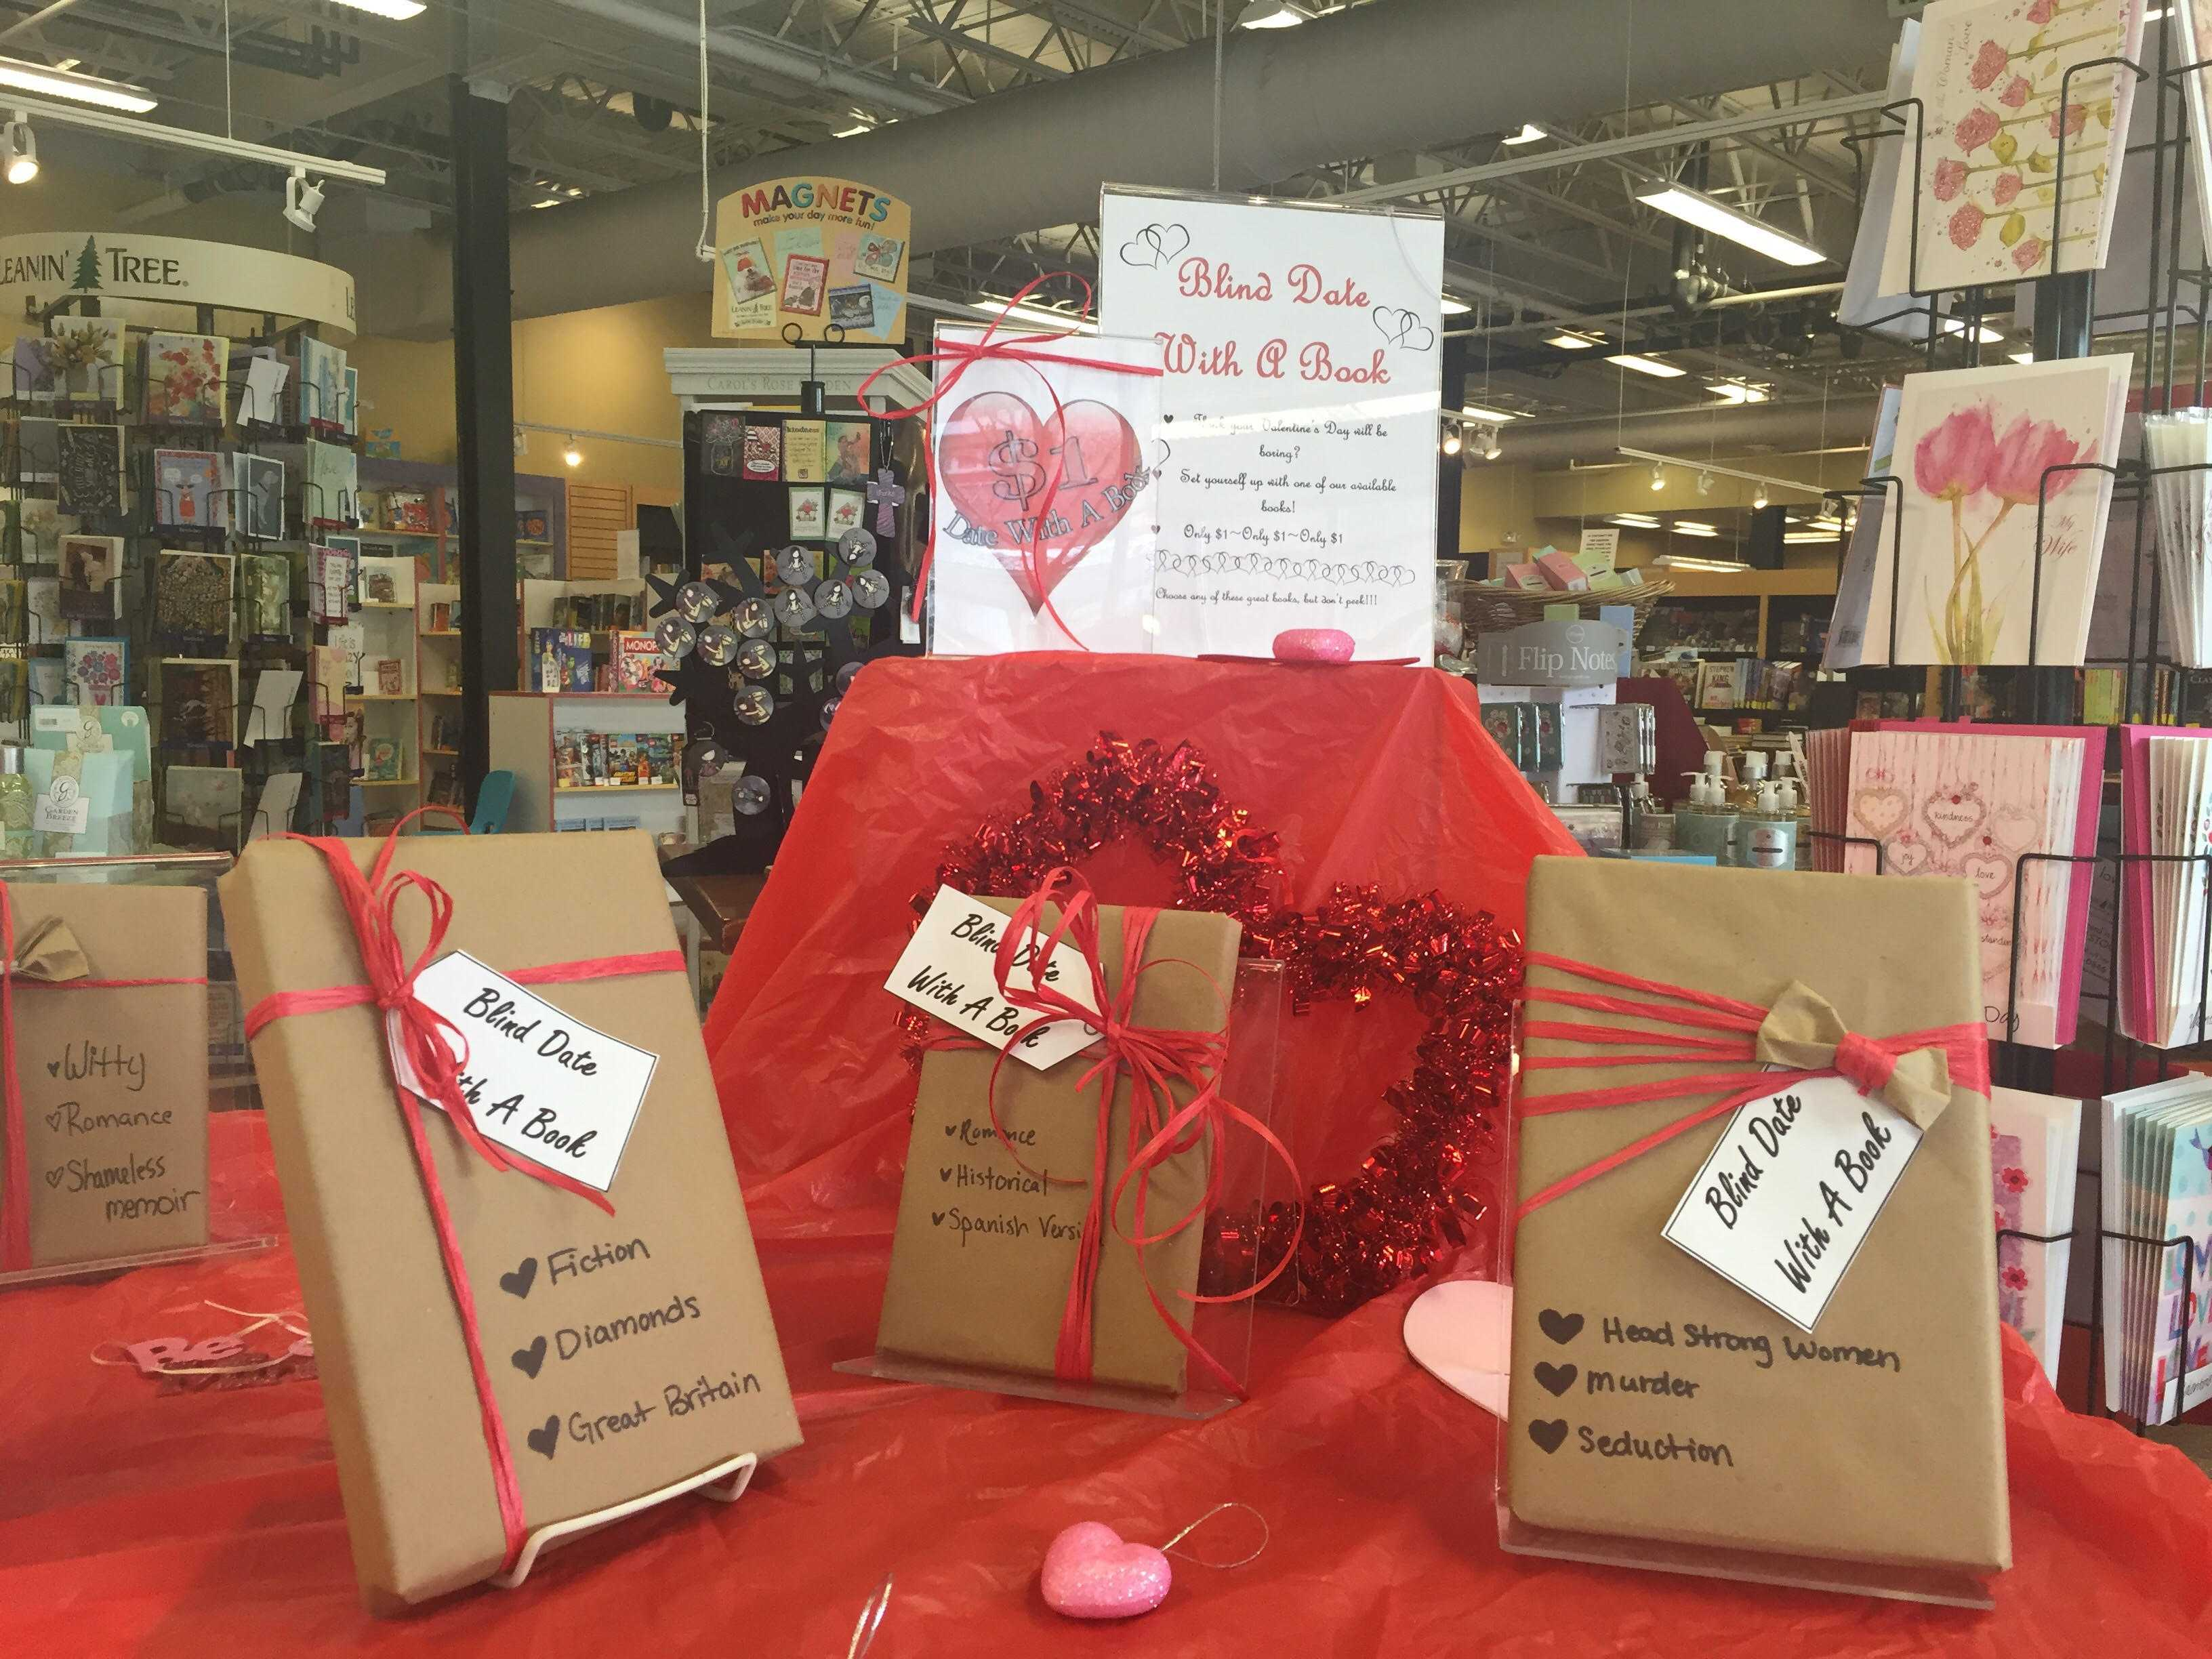 Blind Date with a Book selections are displayed at Empire Books and News on Tuesday.